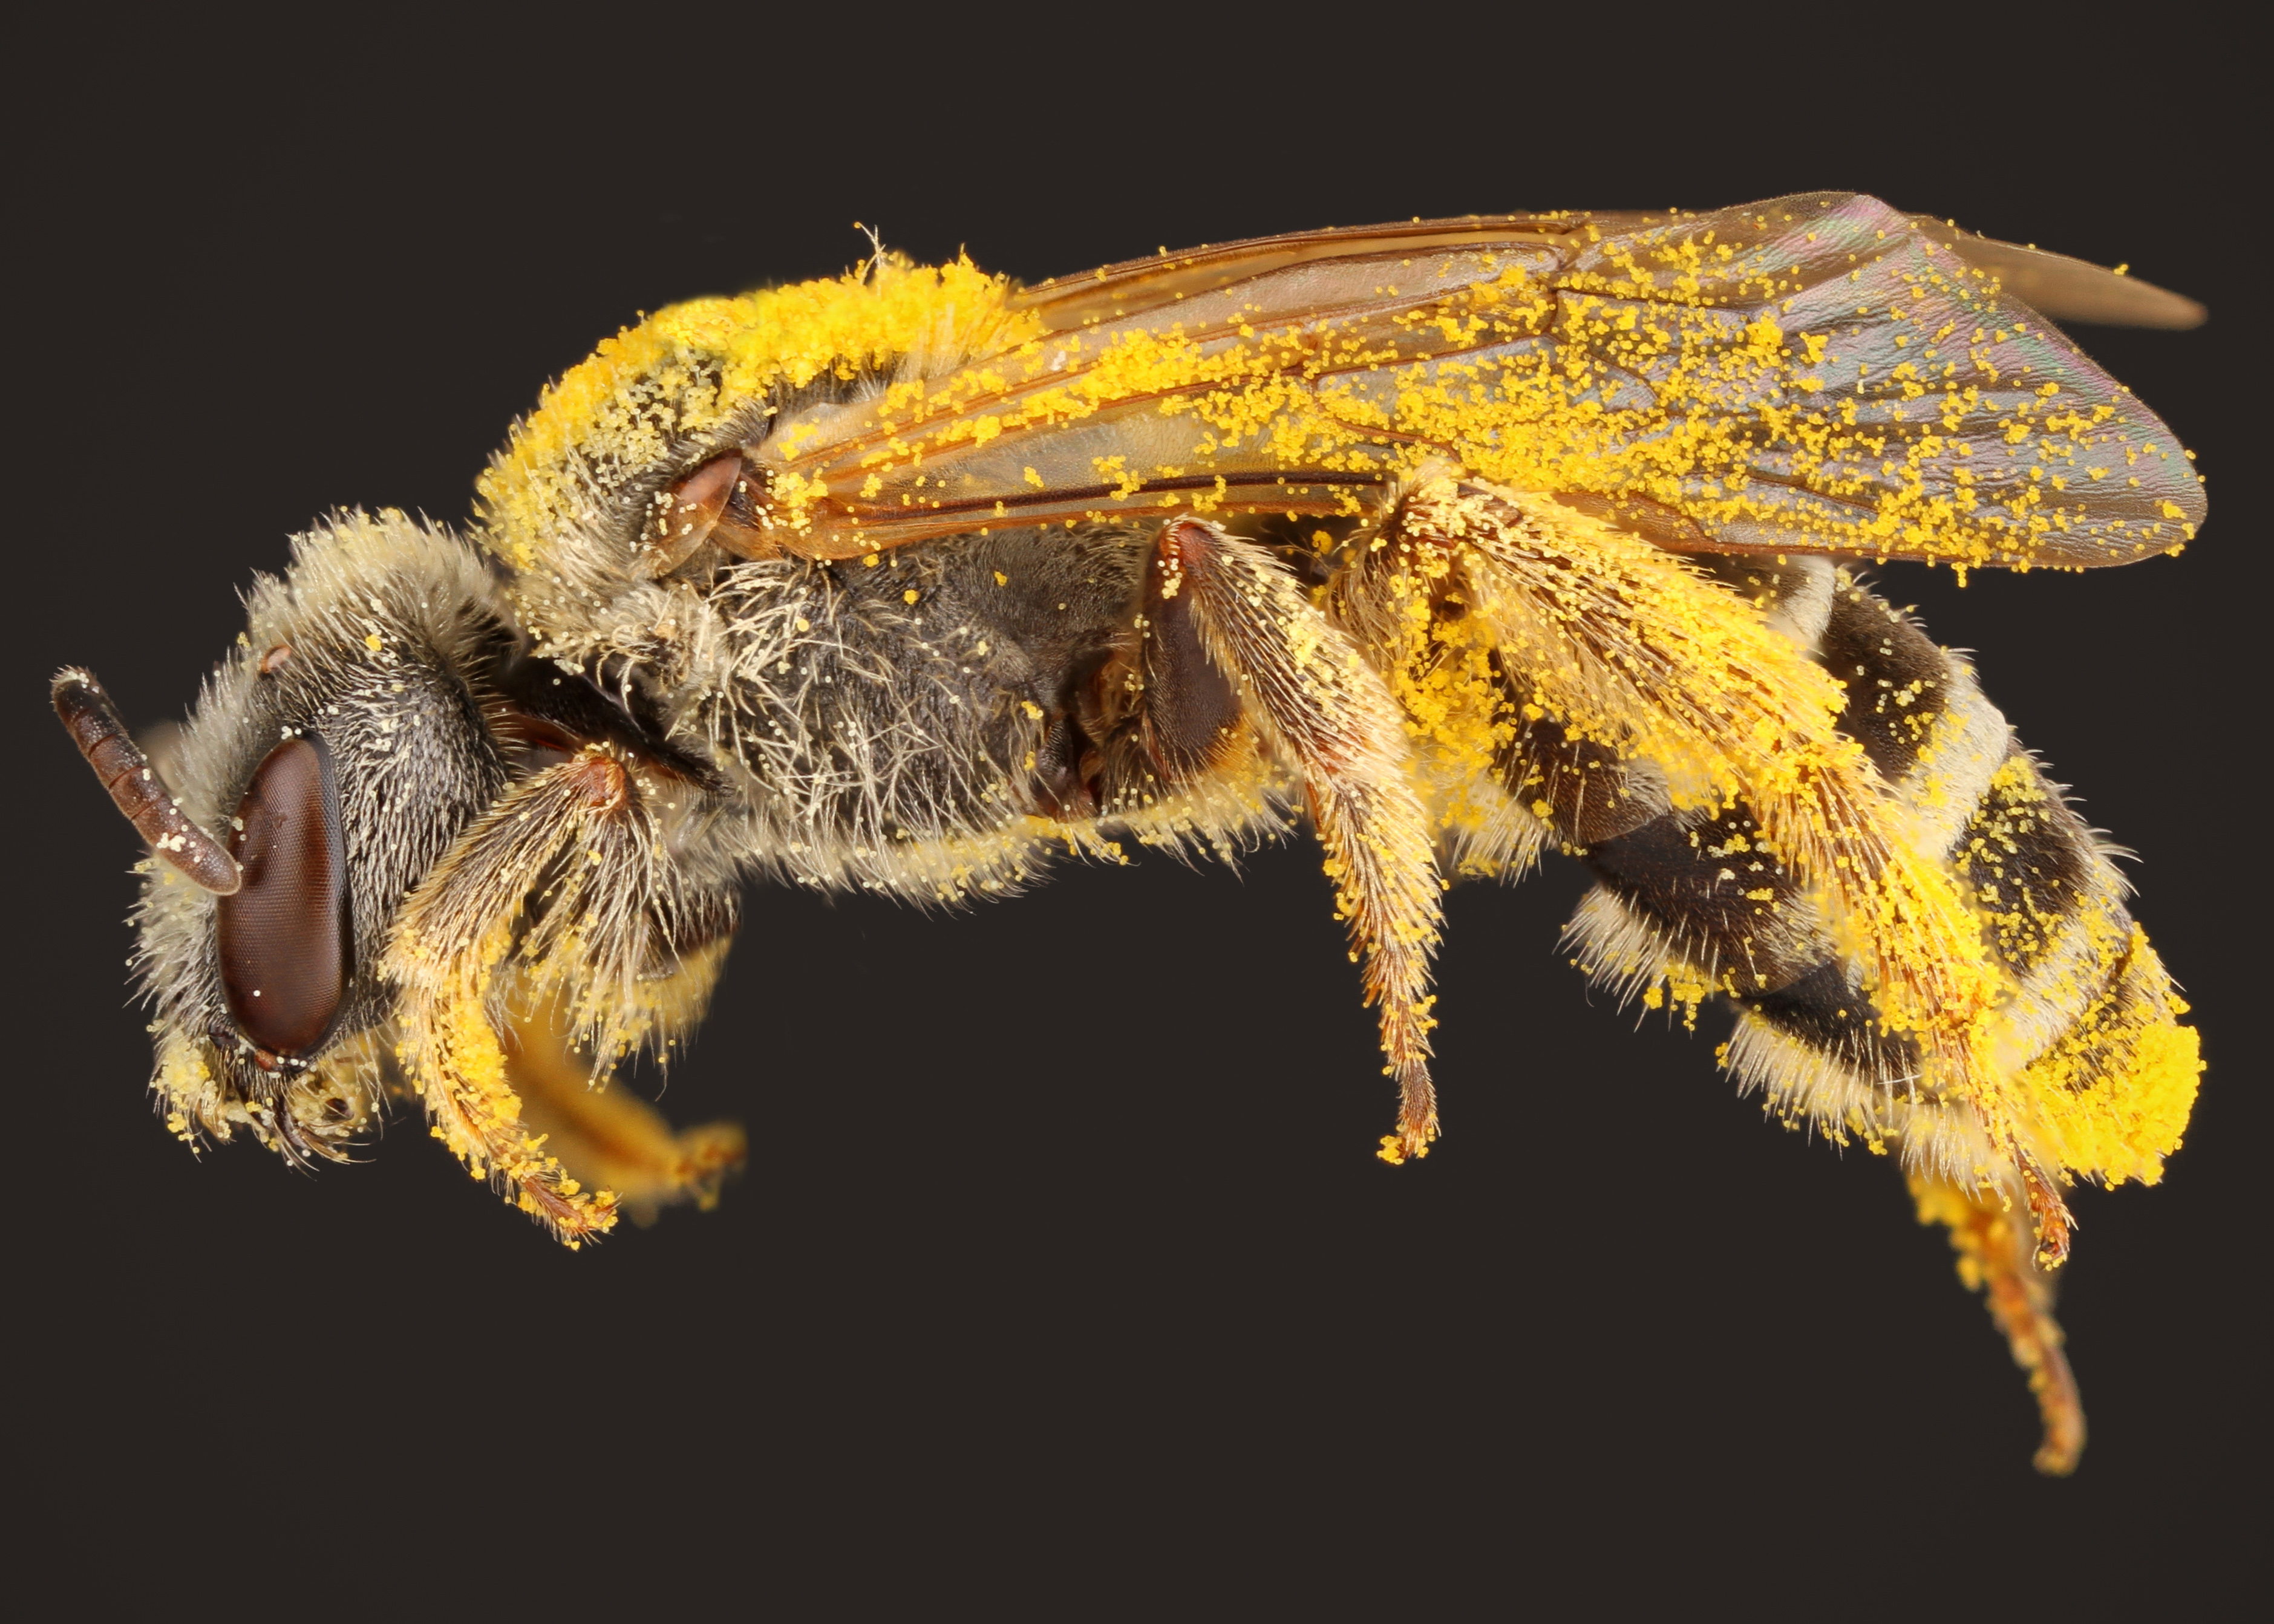 A Sweat Bee native to Texas covered in pollen. credit: Alejandro Santillana, Insects Unlocked